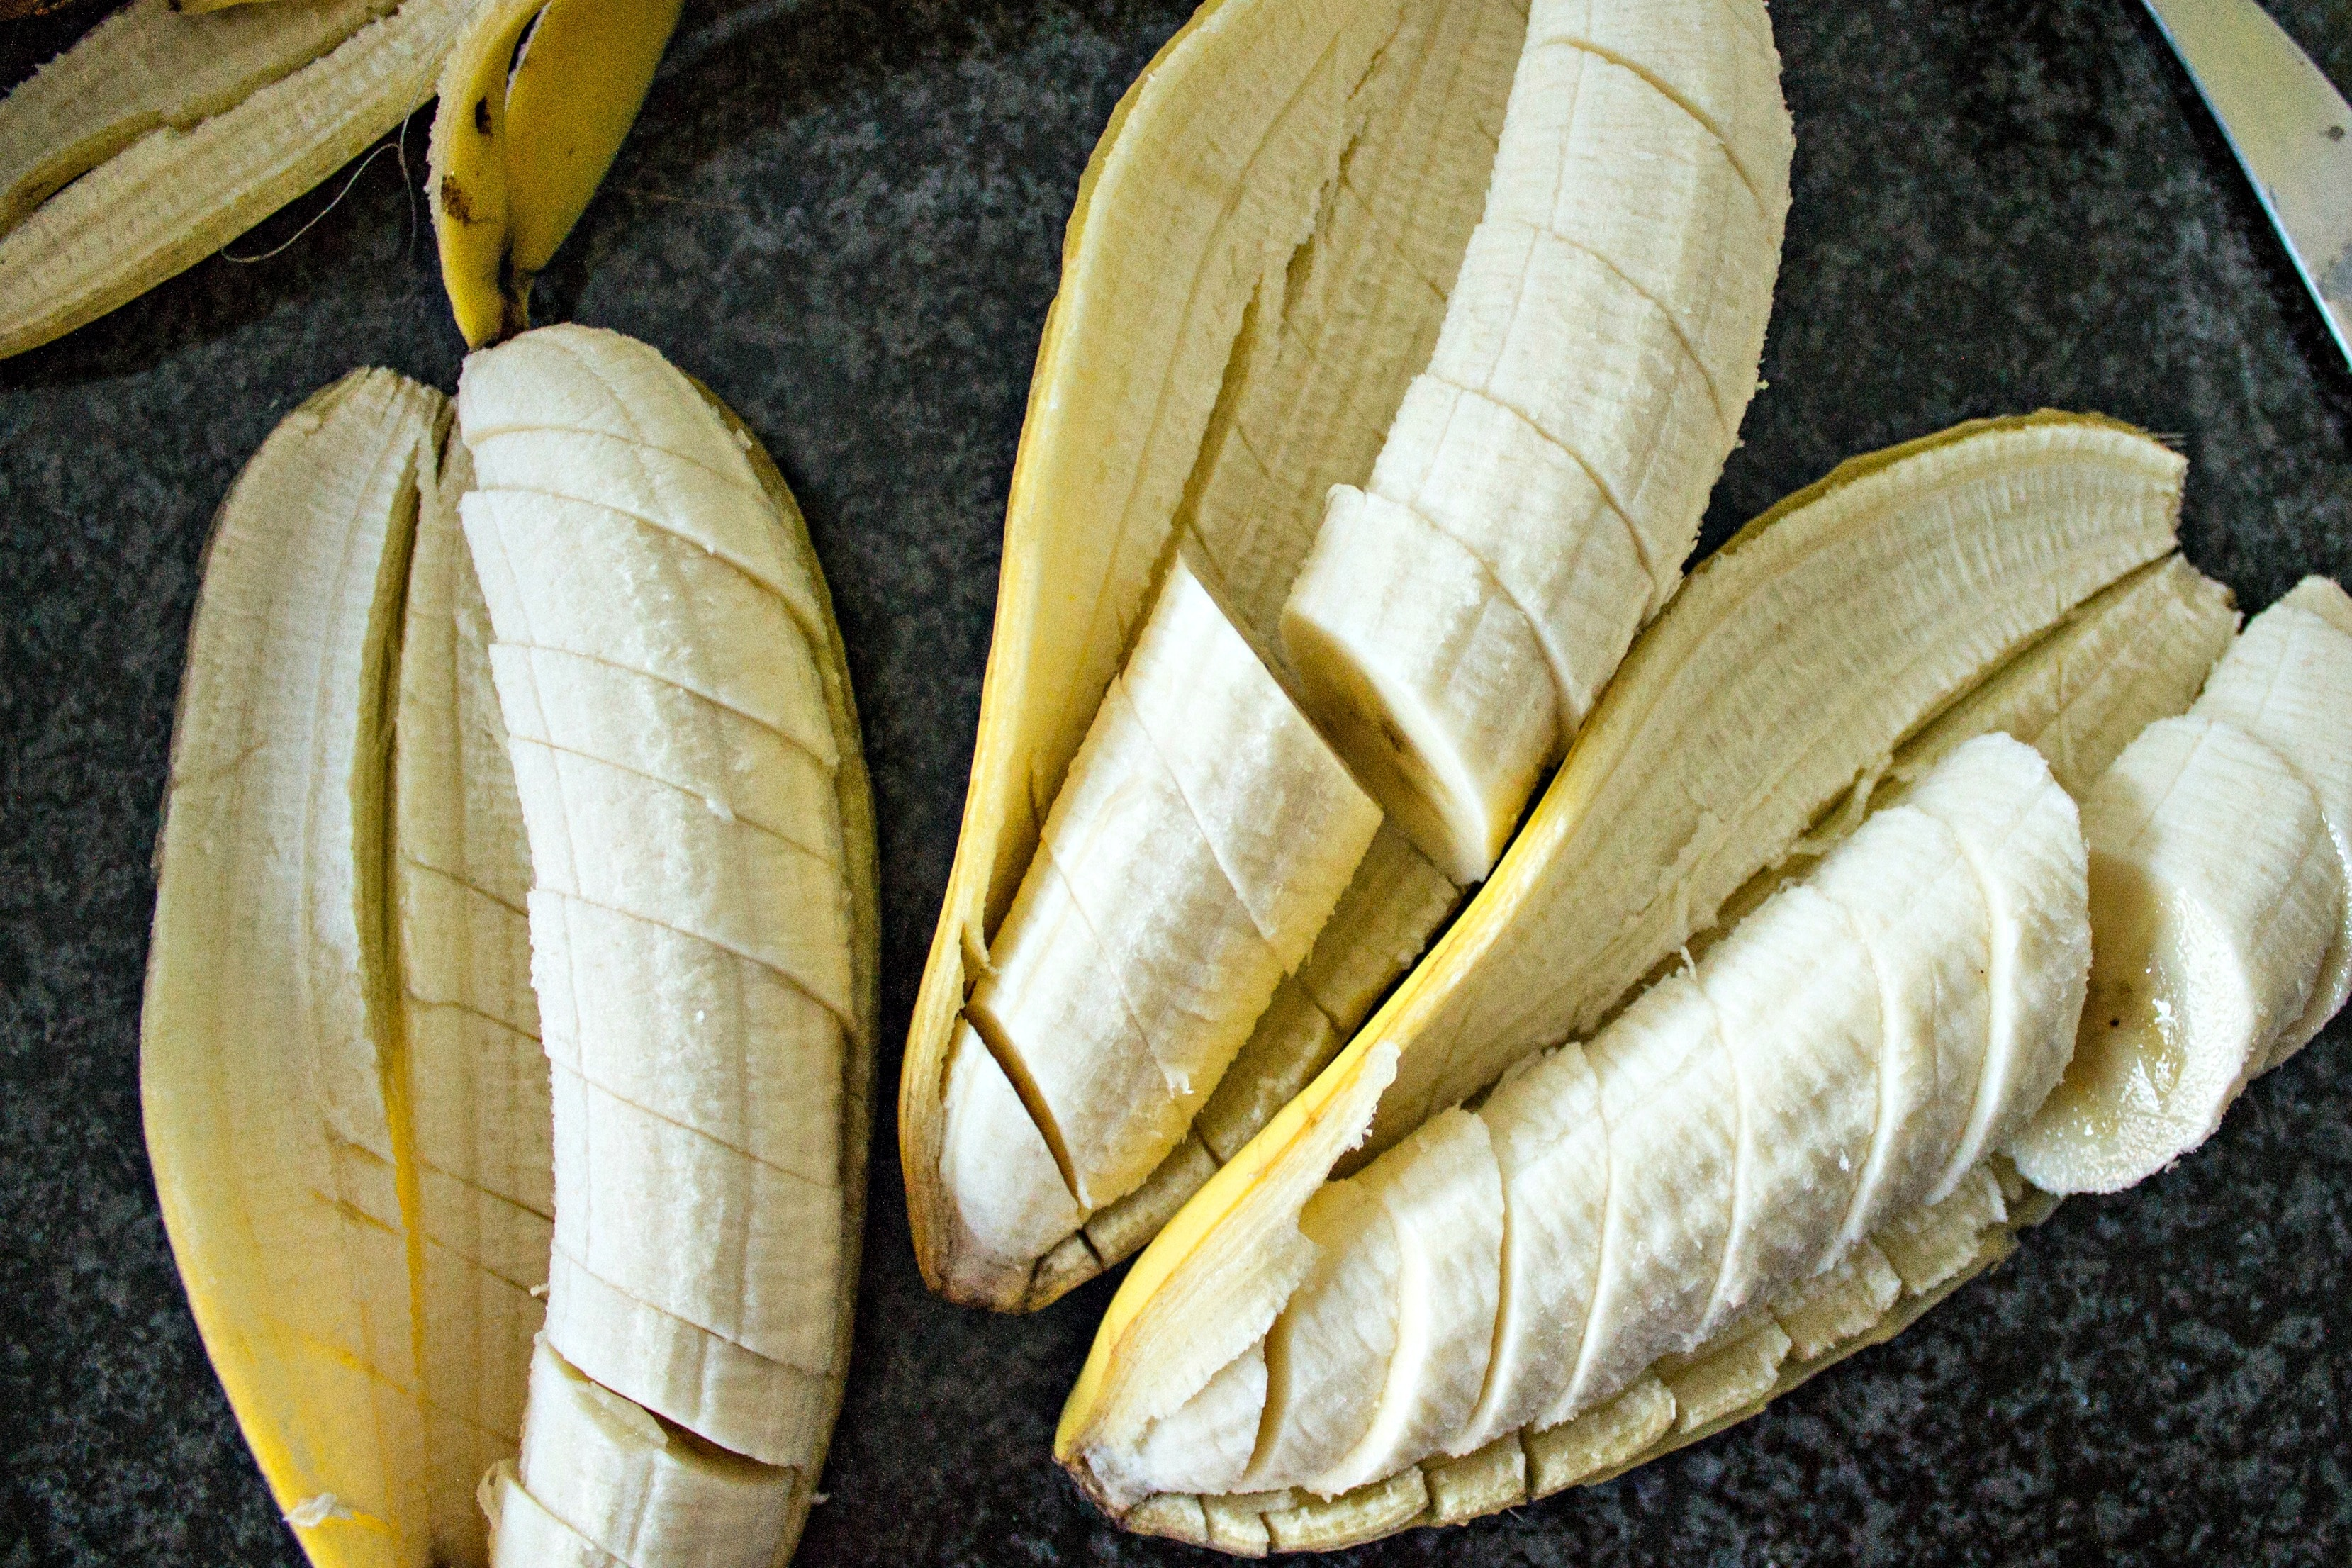 Bananas cut into slices